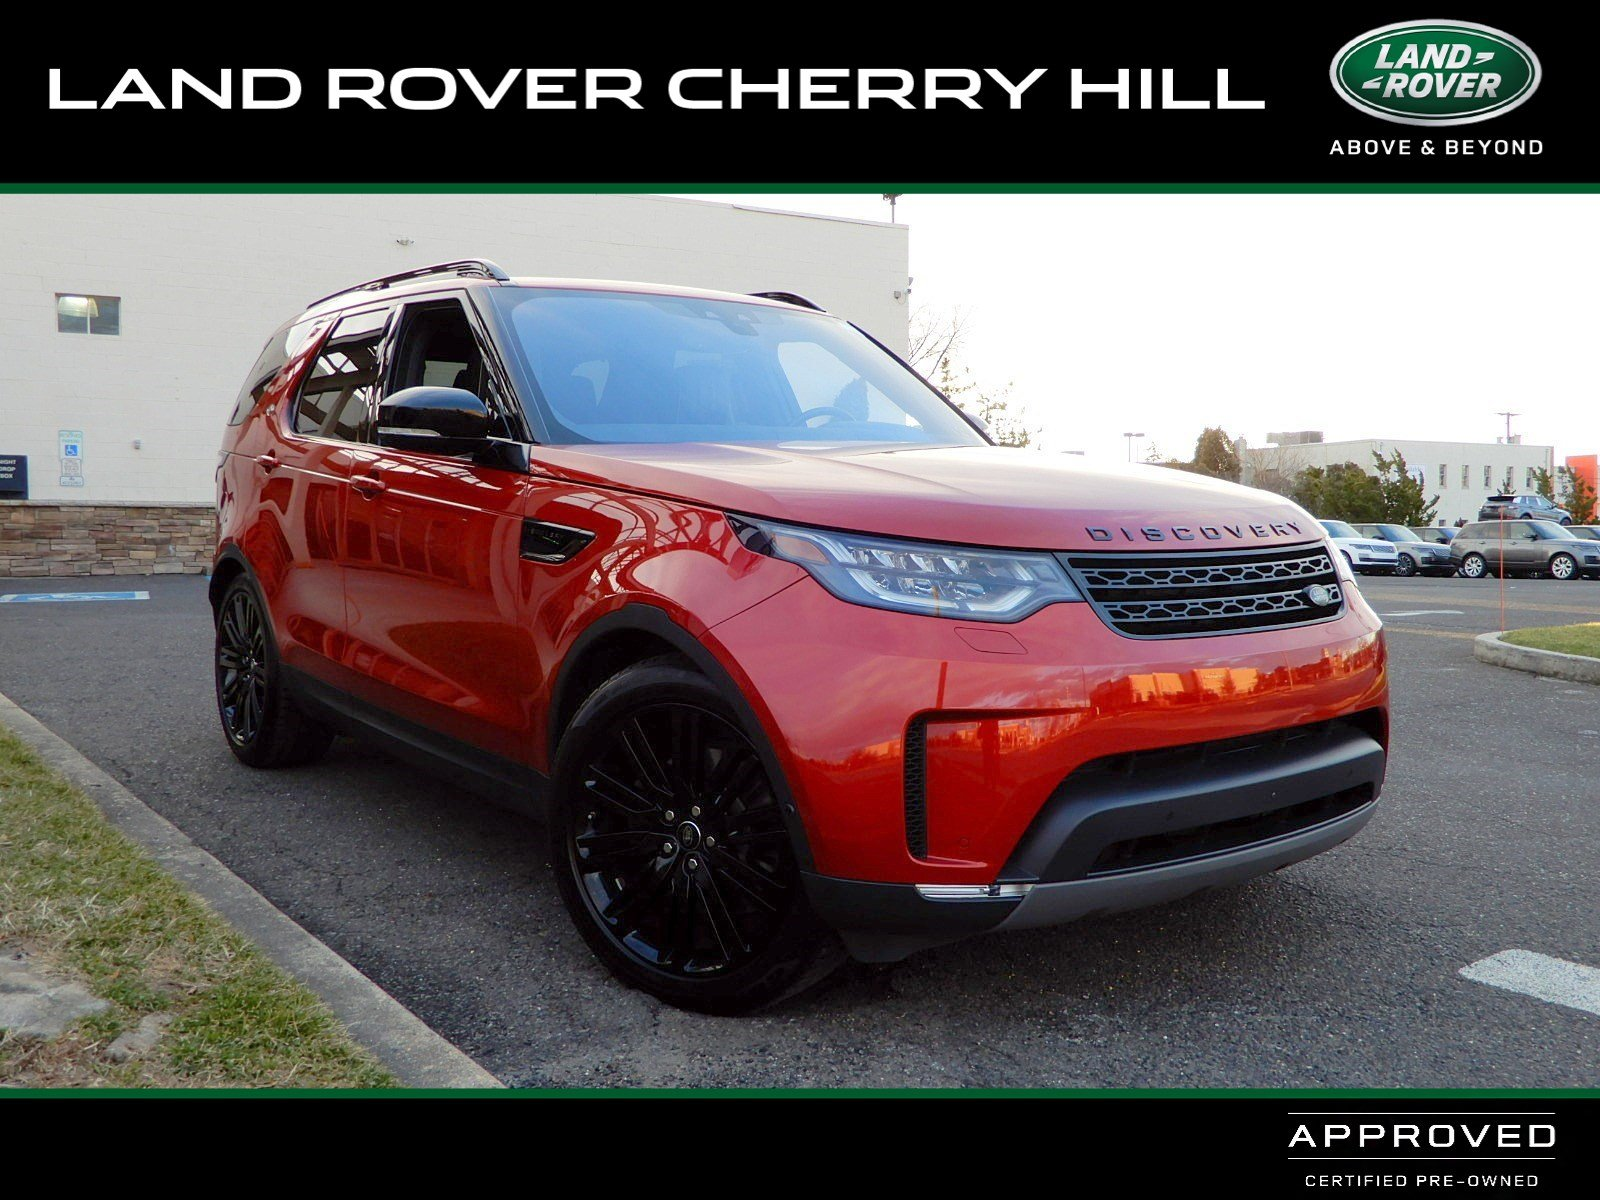 2017 Land Rover Discovery HSE Luxury HSE Luxury V6 Supercharged